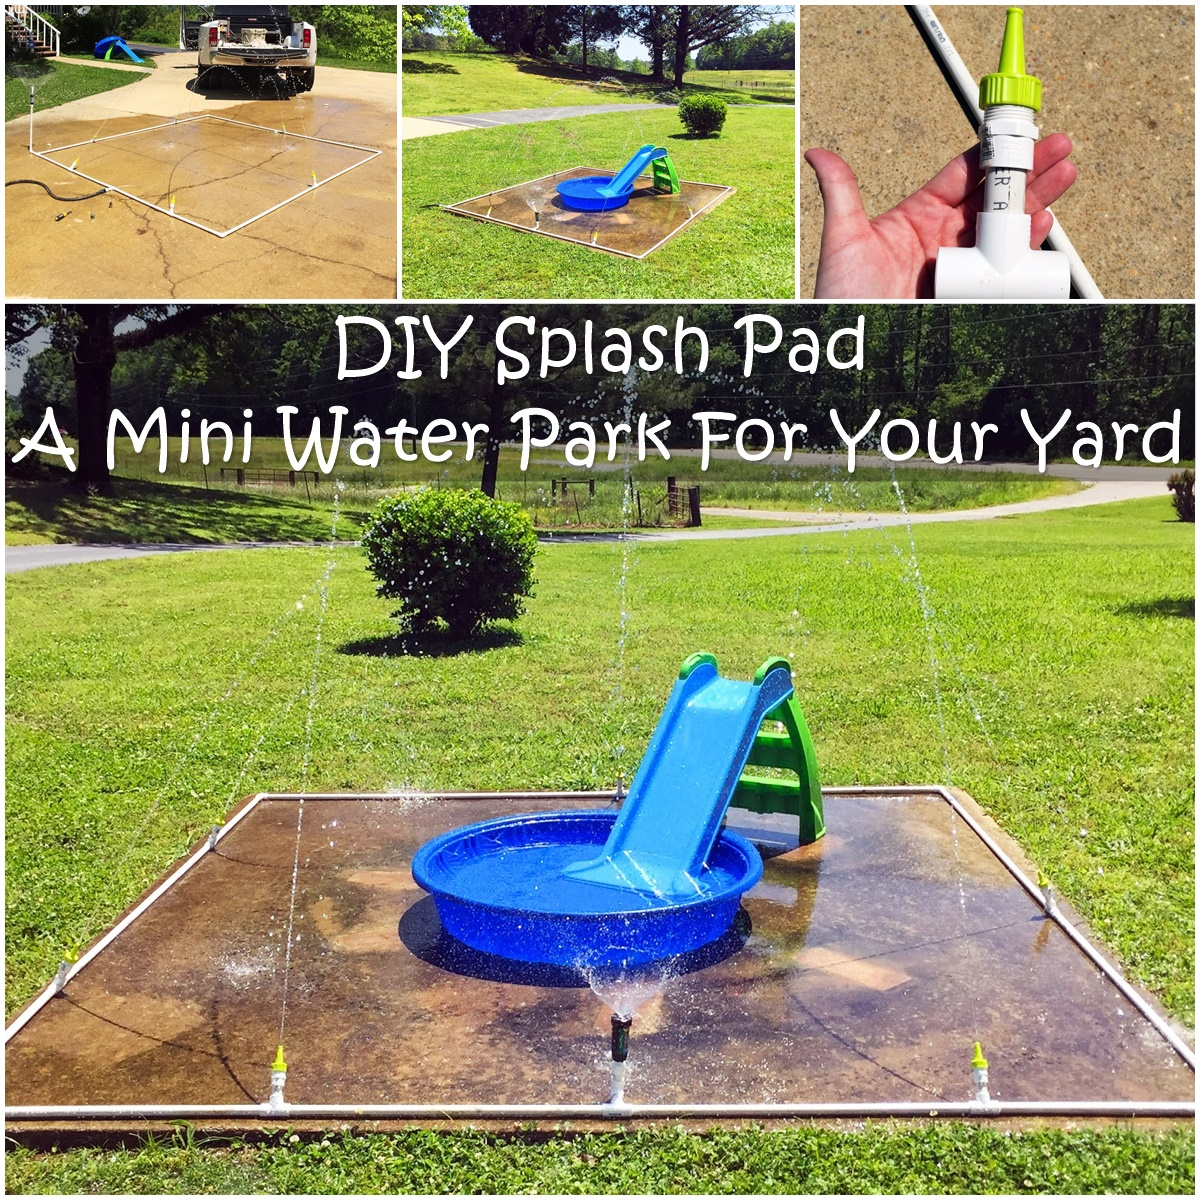 DIY Splash Pad U2013 A Mini Water Park For Your Yard